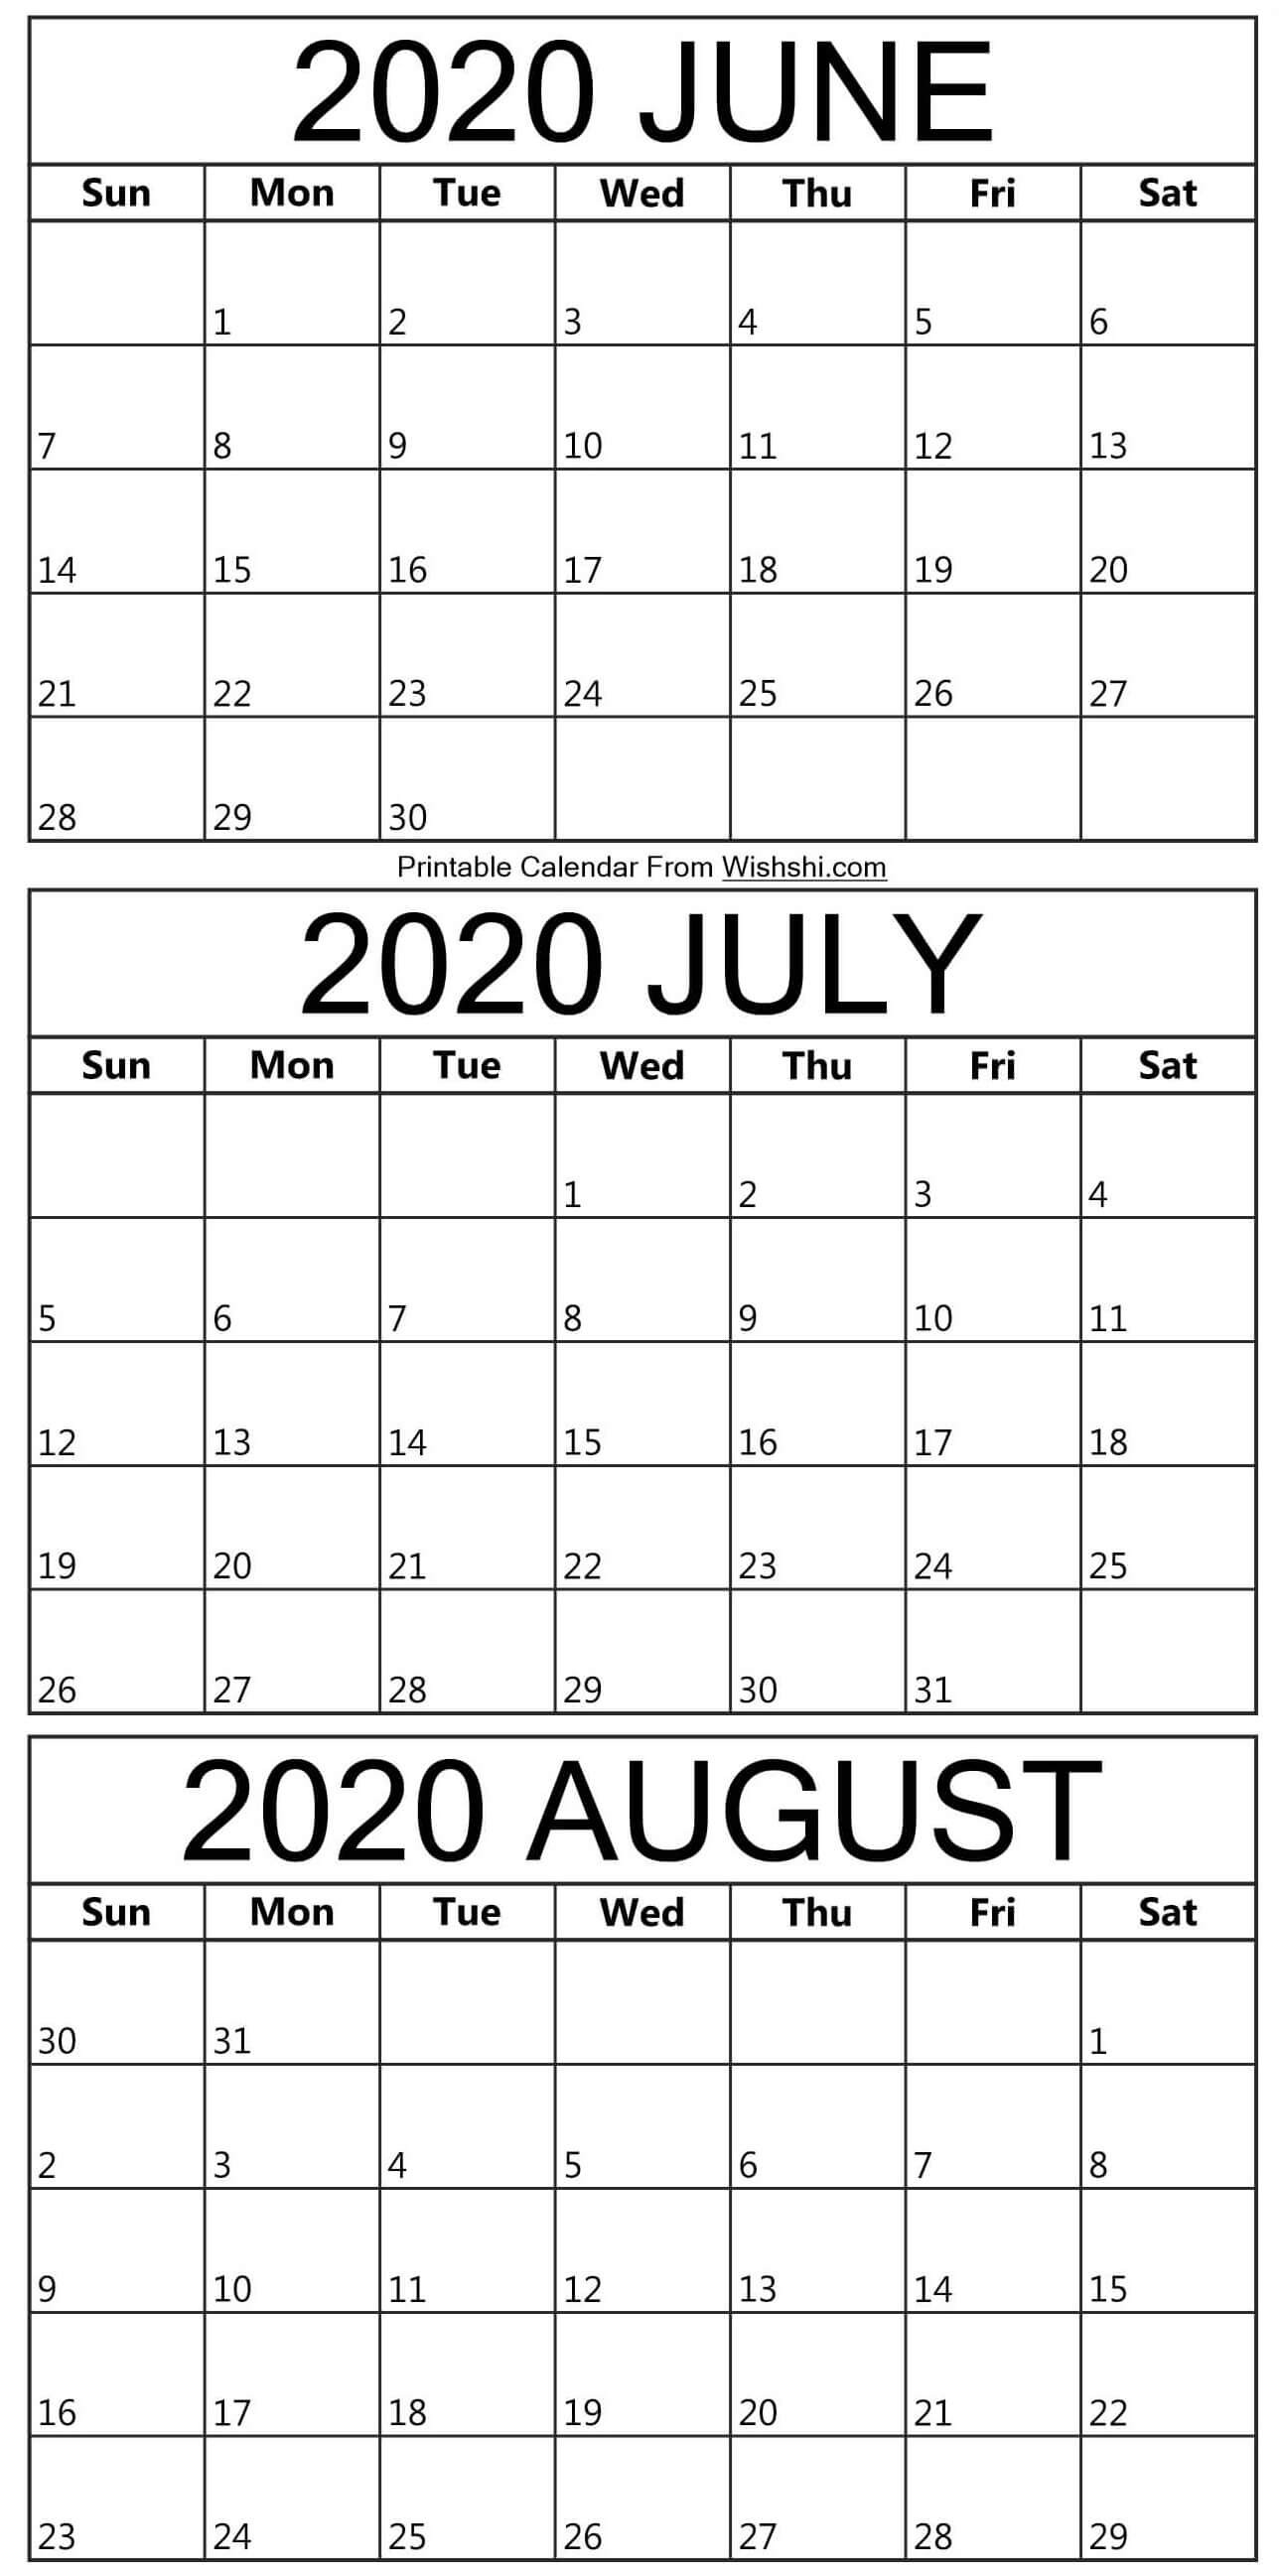 Printable June To August 2020 Calendar - Free Printable-Blank Calendars June July And August 2020